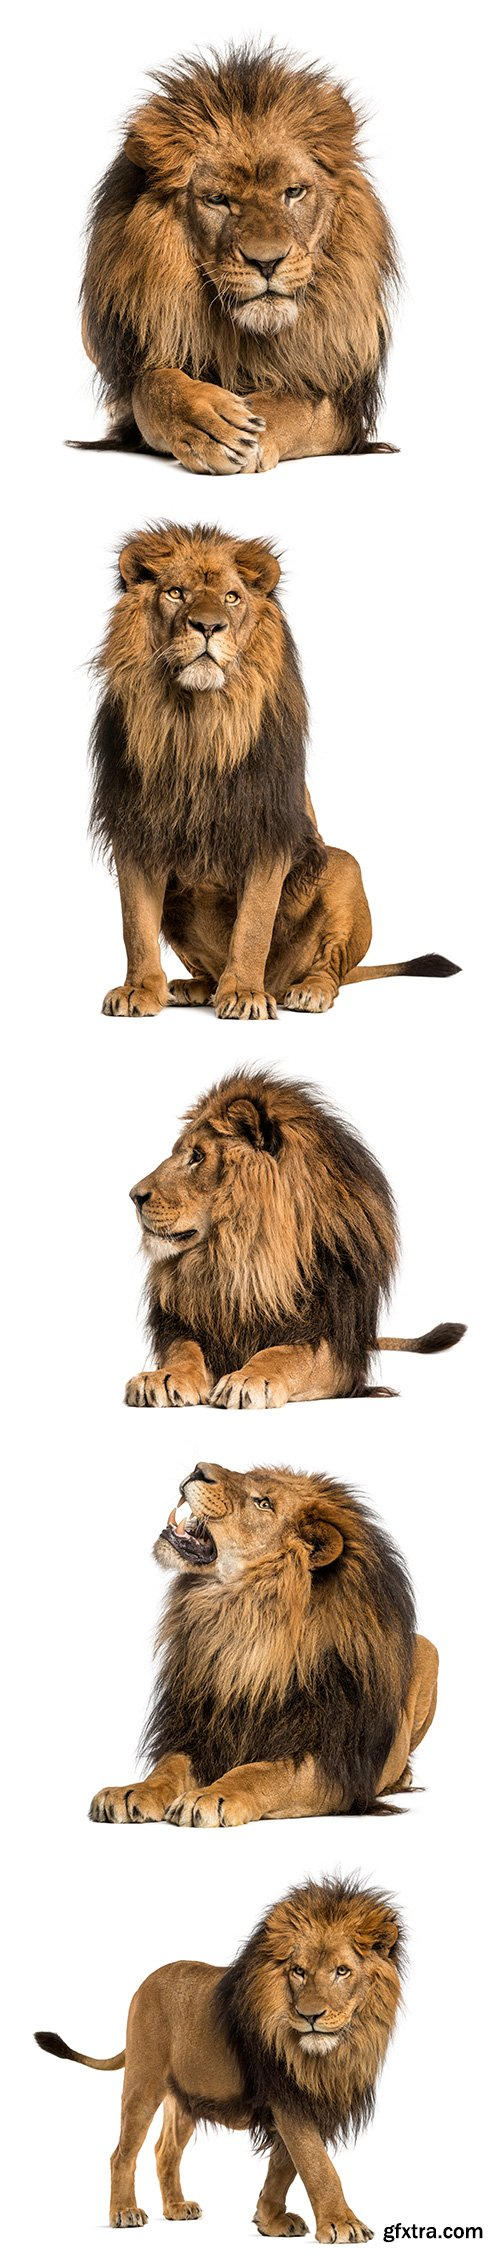 Lion Isolated - 15xJPGs